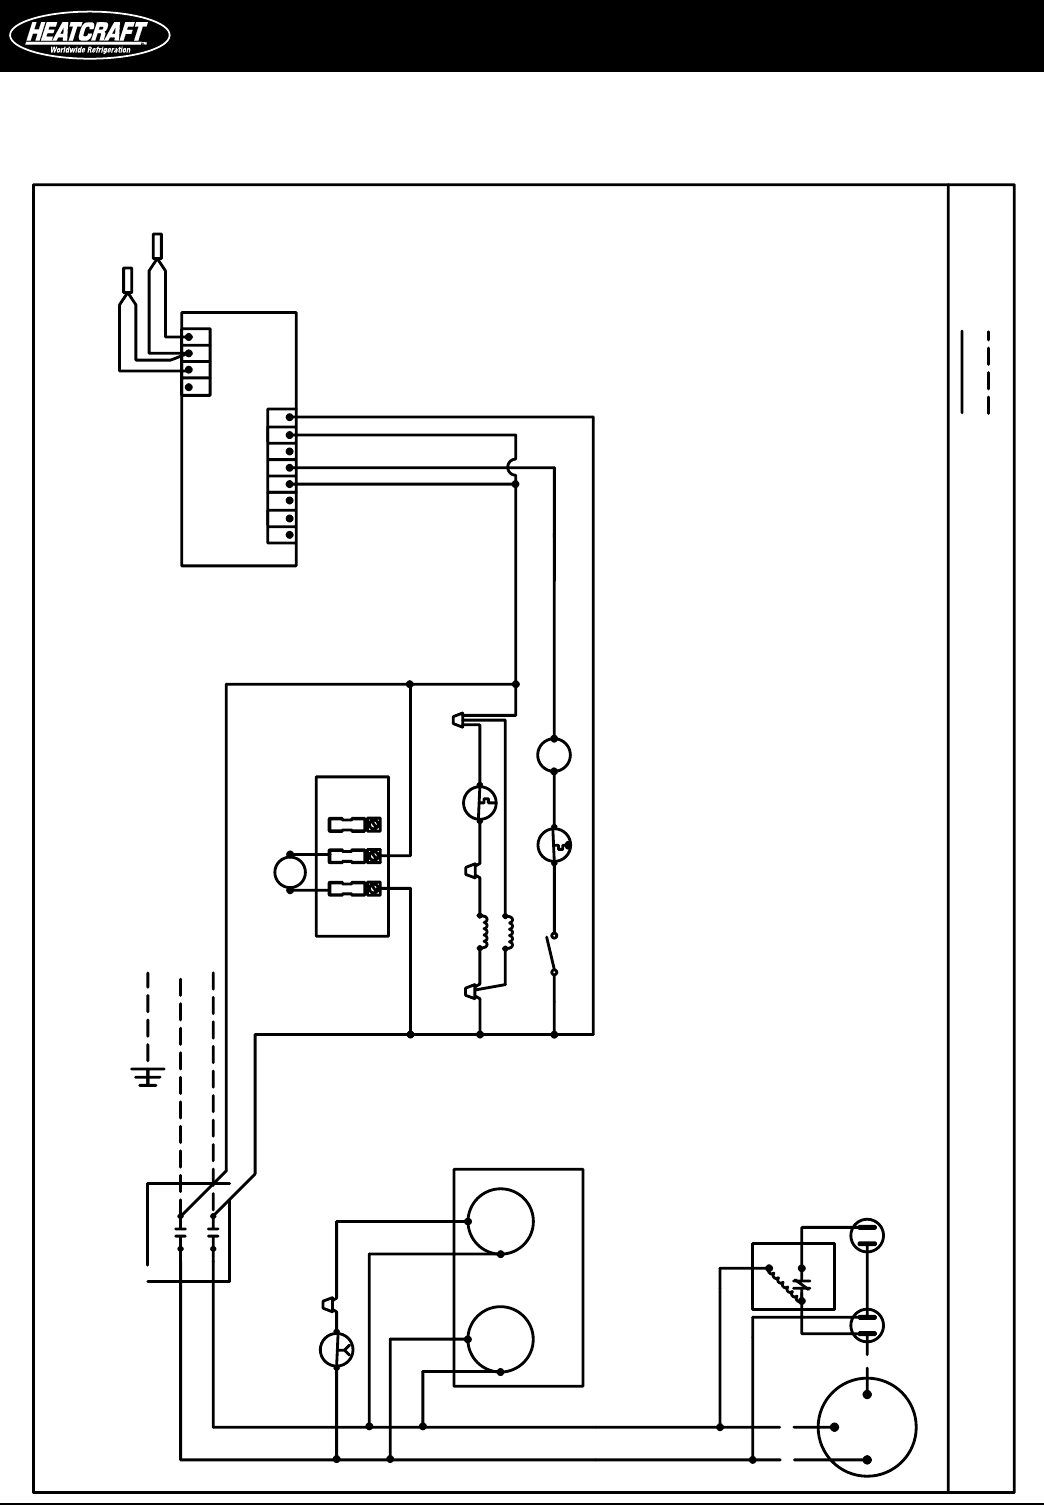 55587f91 c859 def4 0921 730c5709c050 bg10 page 16 of heatcraft refrigeration products refrigerator pro3 user heatcraft wiring diagram at reclaimingppi.co